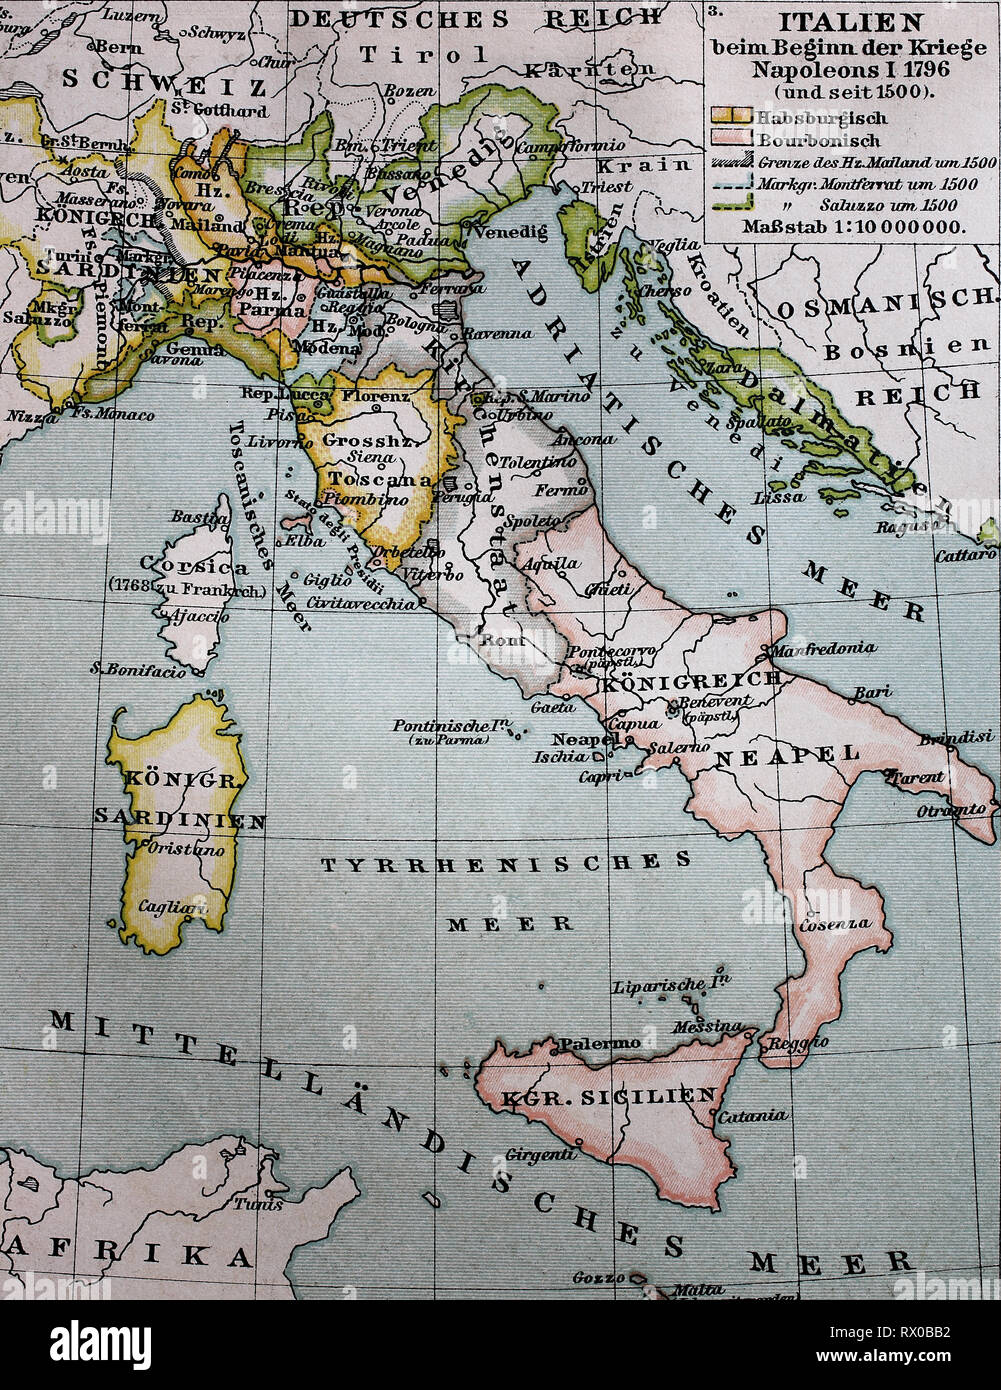 Landkarte von Italien von 1500 bis bei Beginn der Kriege Napoleon I, 1796 / Map of Italy from 1500 until the beginning of the Napoleonic Wars, 1796 - Stock Image